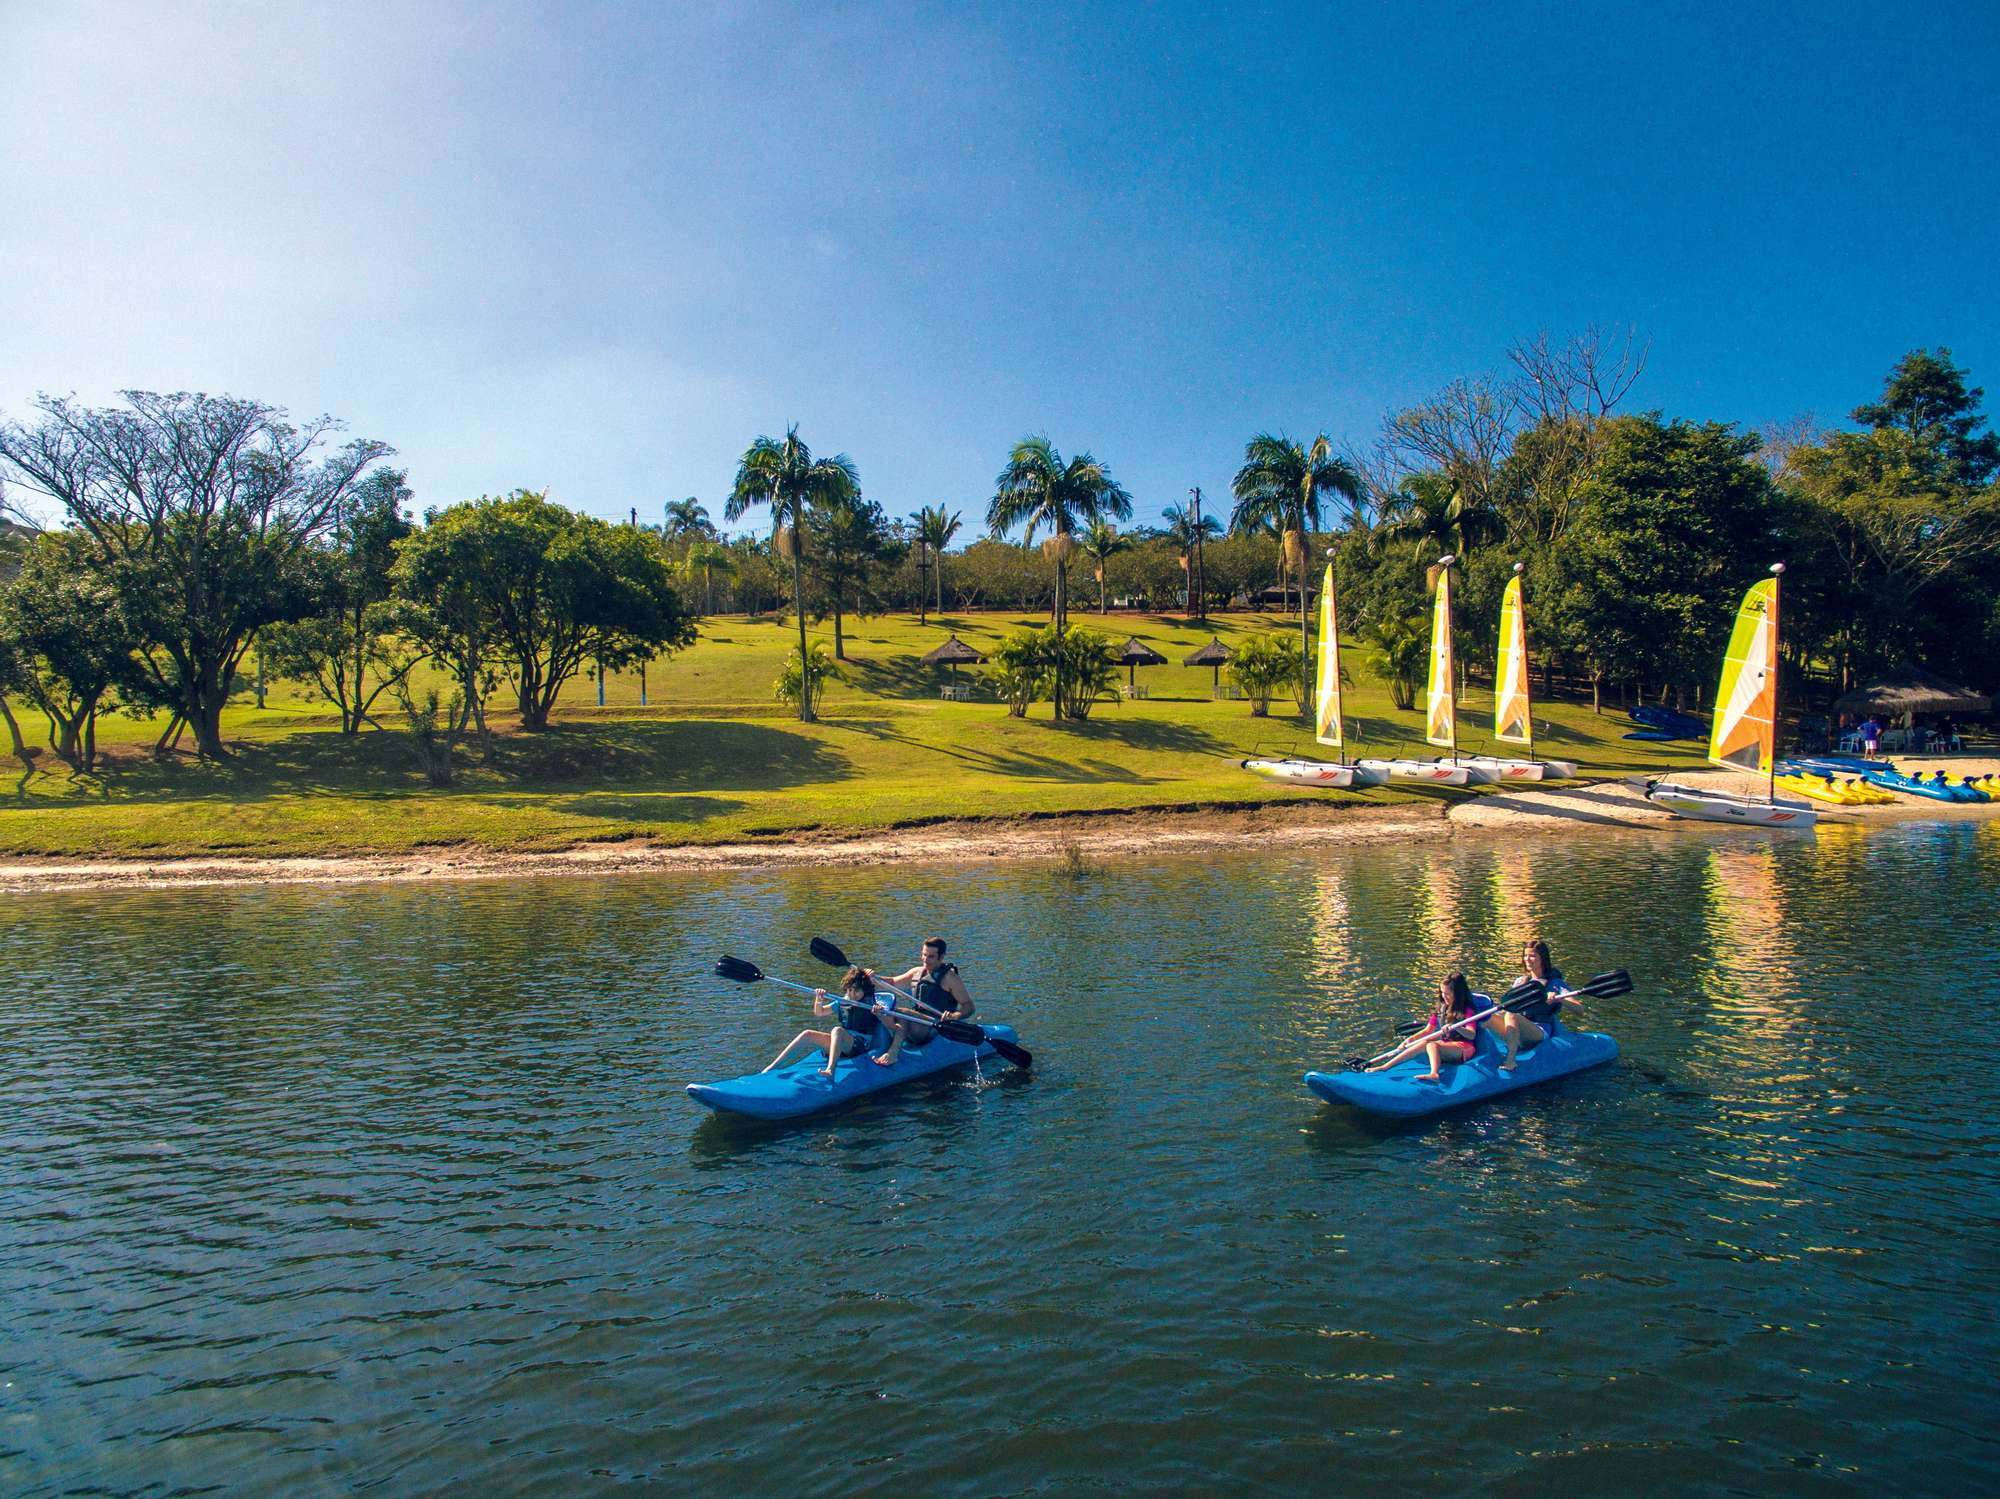 Club Med Lake Paradise, Mogi das Cruzes, SP